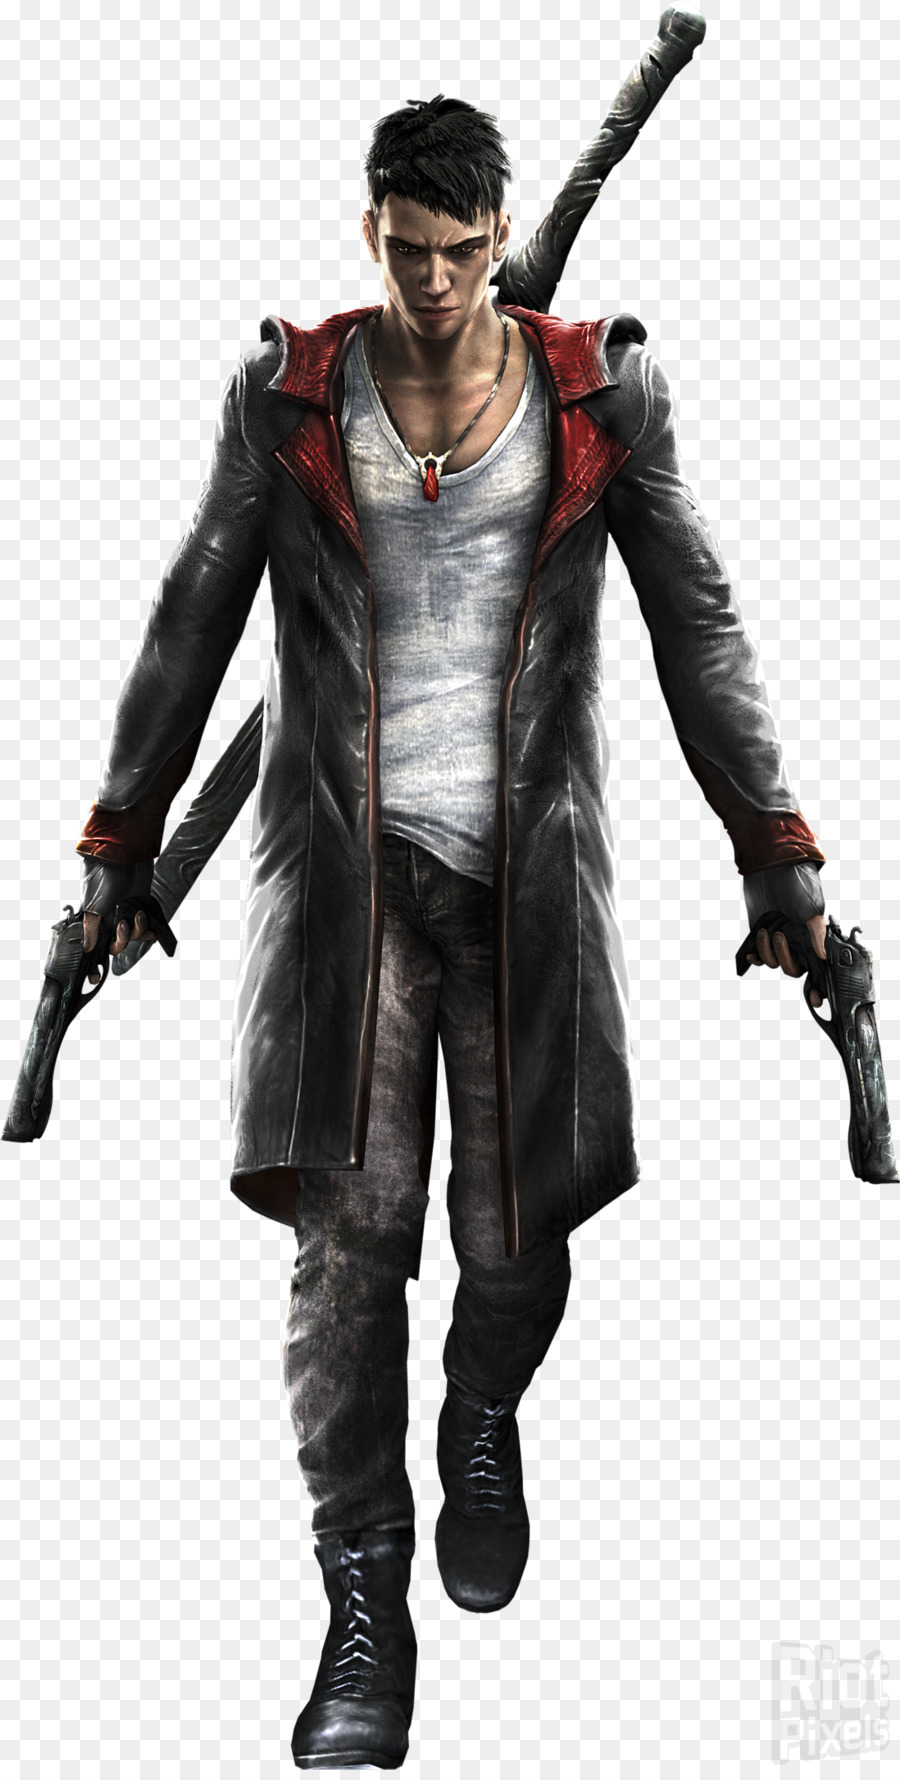 Dmc Devil May Cry Action Figure png download.